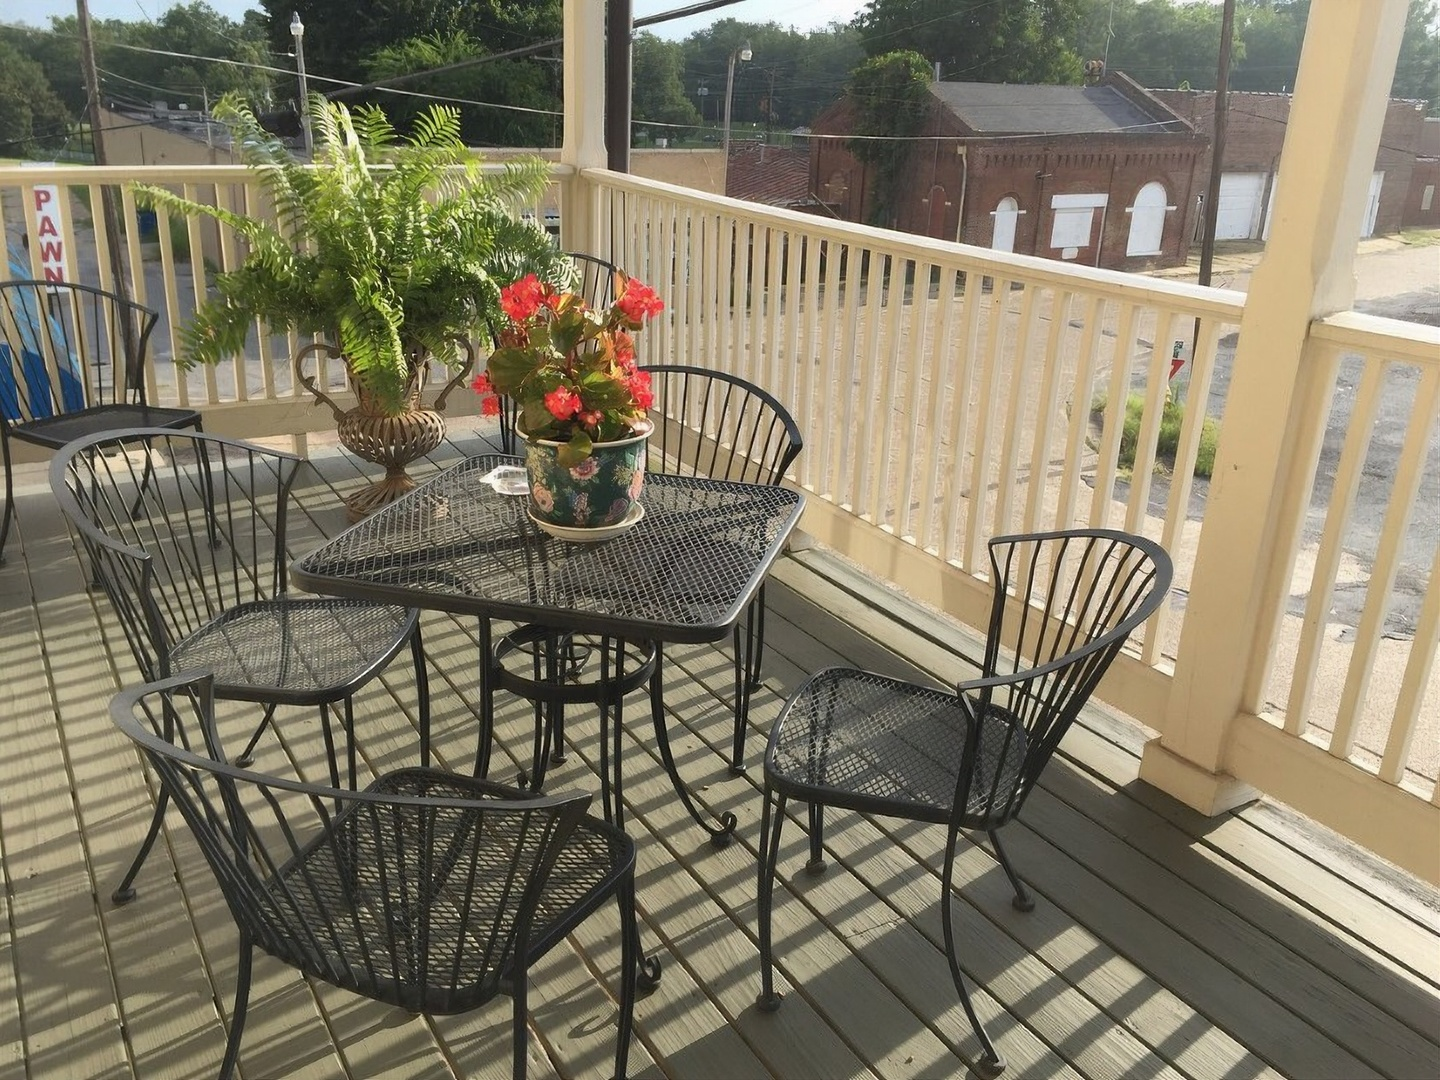 A chair sitting in front of a fence at Court Square Inn Bed & Breakfast.